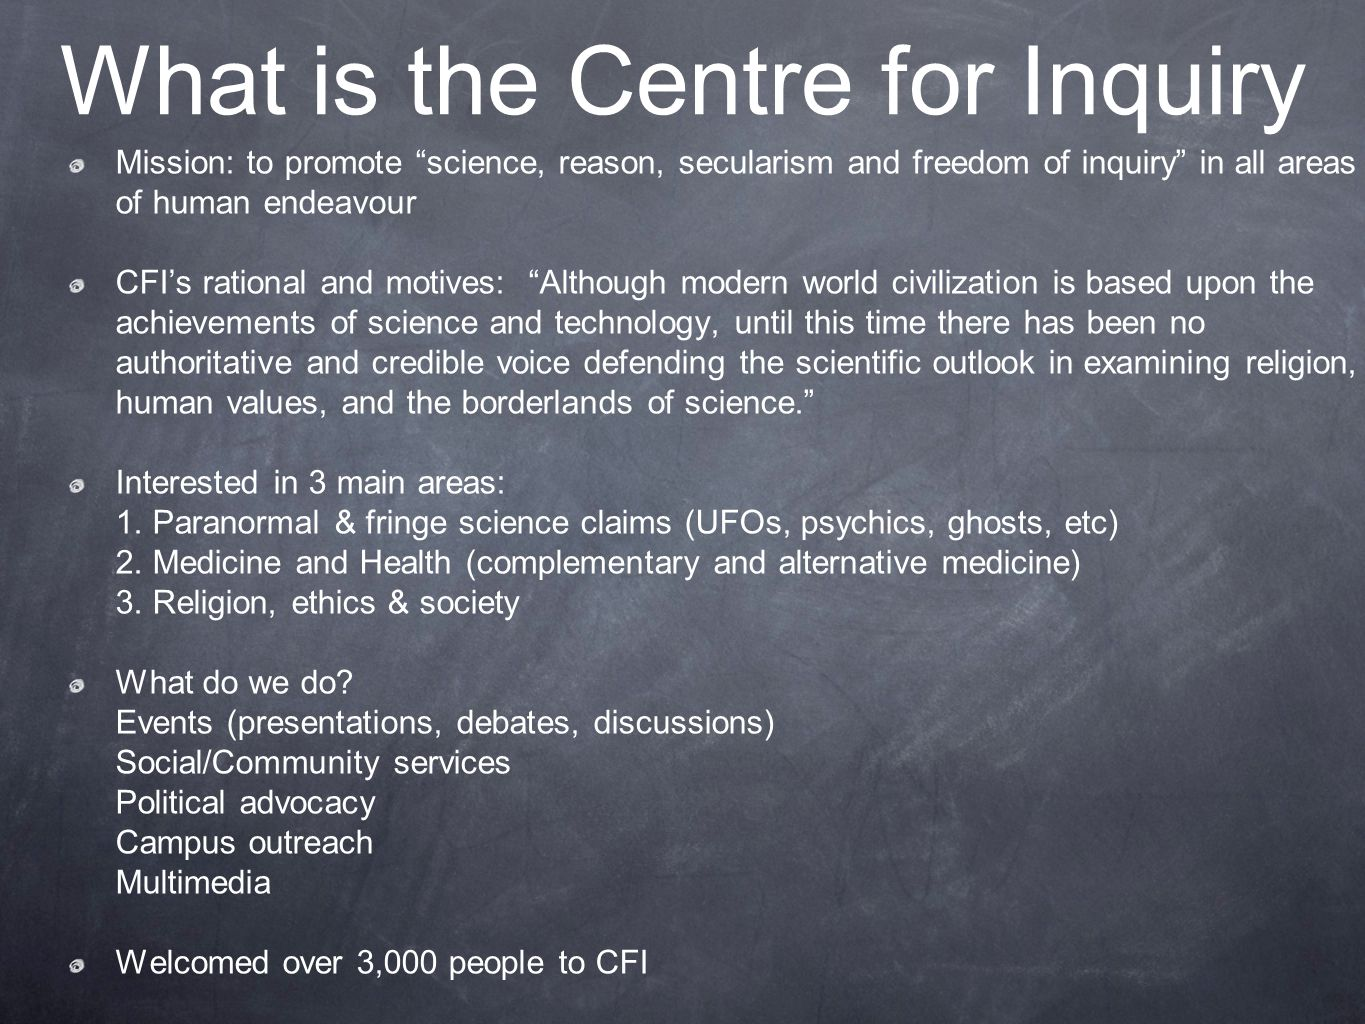 What is the Centre for Inquiry Mission: to promote science, reason, secularism and freedom of inquiry in all areas of human endeavour CFI's rational and motives: Although modern world civilization is based upon the achievements of science and technology, until this time there has been no authoritative and credible voice defending the scientific outlook in examining religion, human values, and the borderlands of science. Interested in 3 main areas: 1.